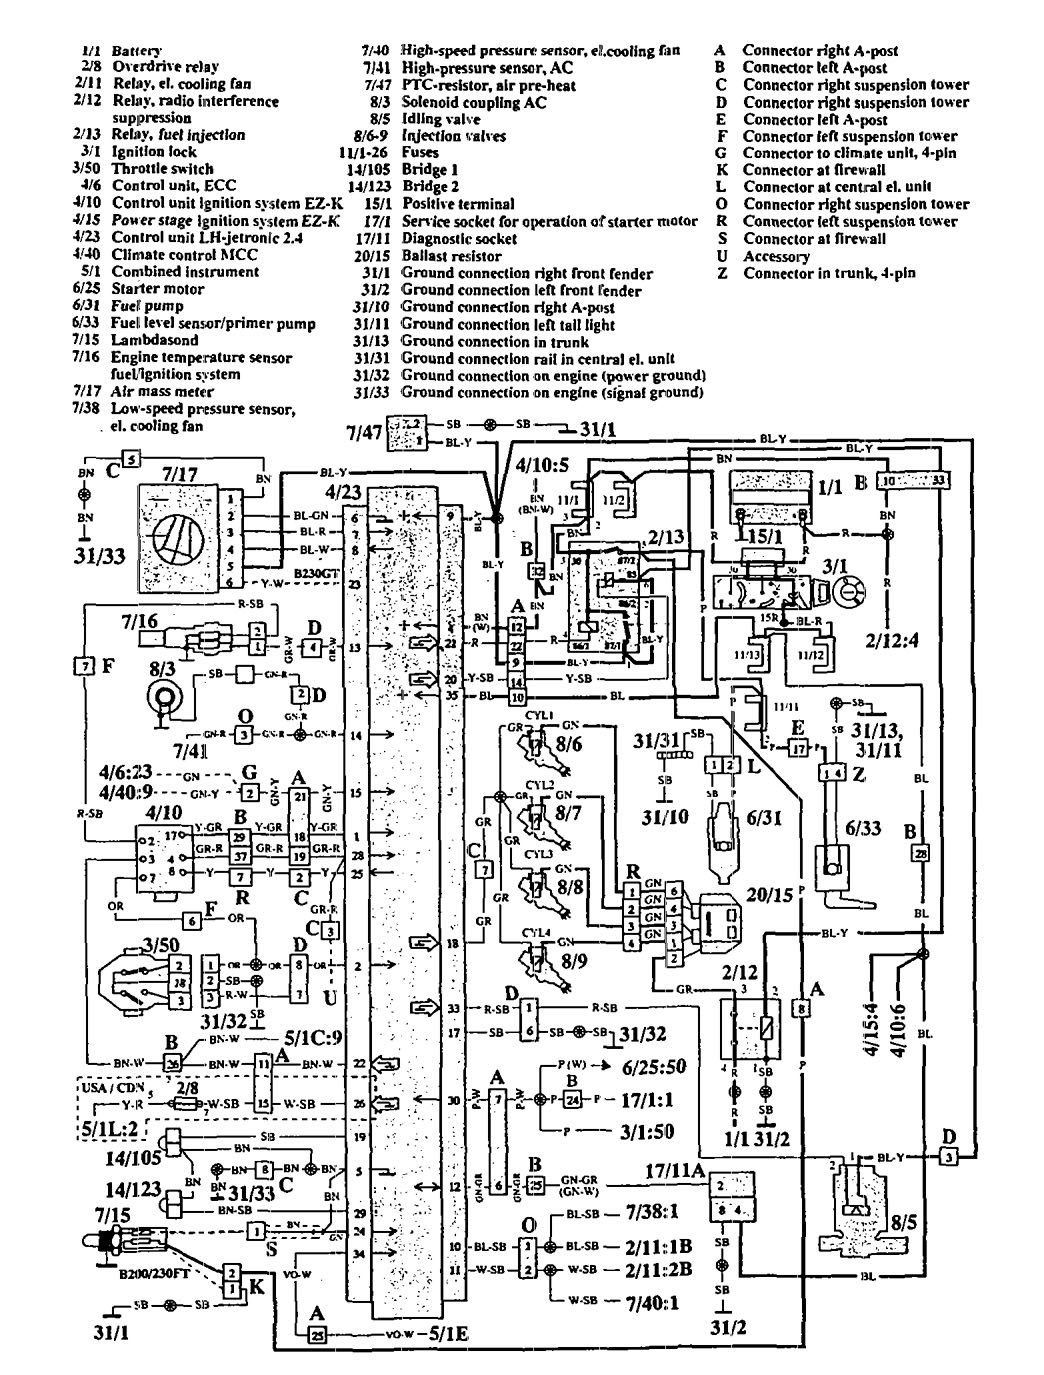 volvo 940 wiring diagram fuel controls v2 2 1992 100 [ wiring diagram volvo s70 ] pcv question volvo forums hu 613 wiring diagram at panicattacktreatment.co